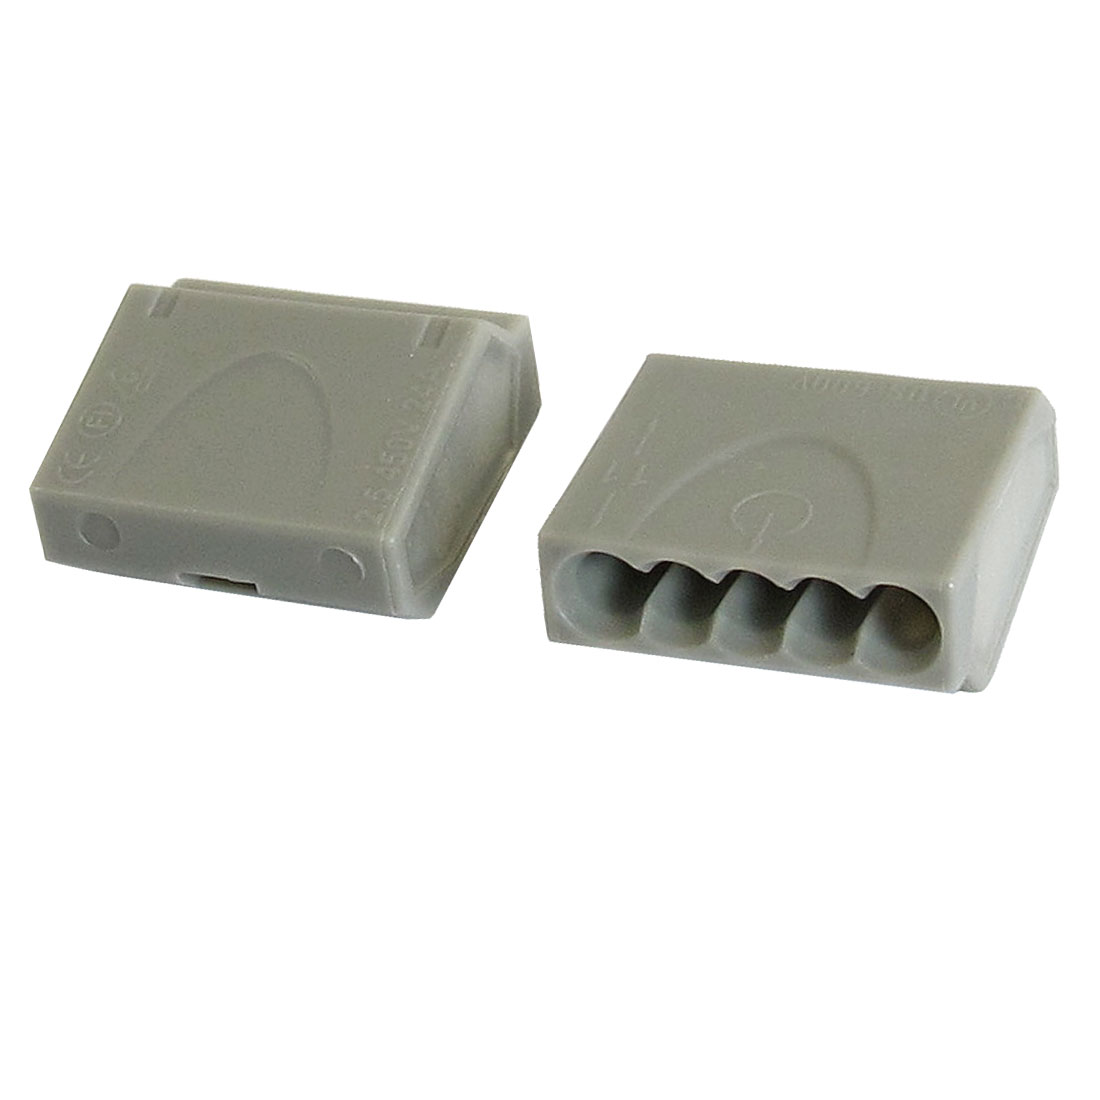 Gray Thermoplastic Terminal Block Pluggable 5 Contacts 12-24AWG AC 24A 450V Connector 2 Pcs